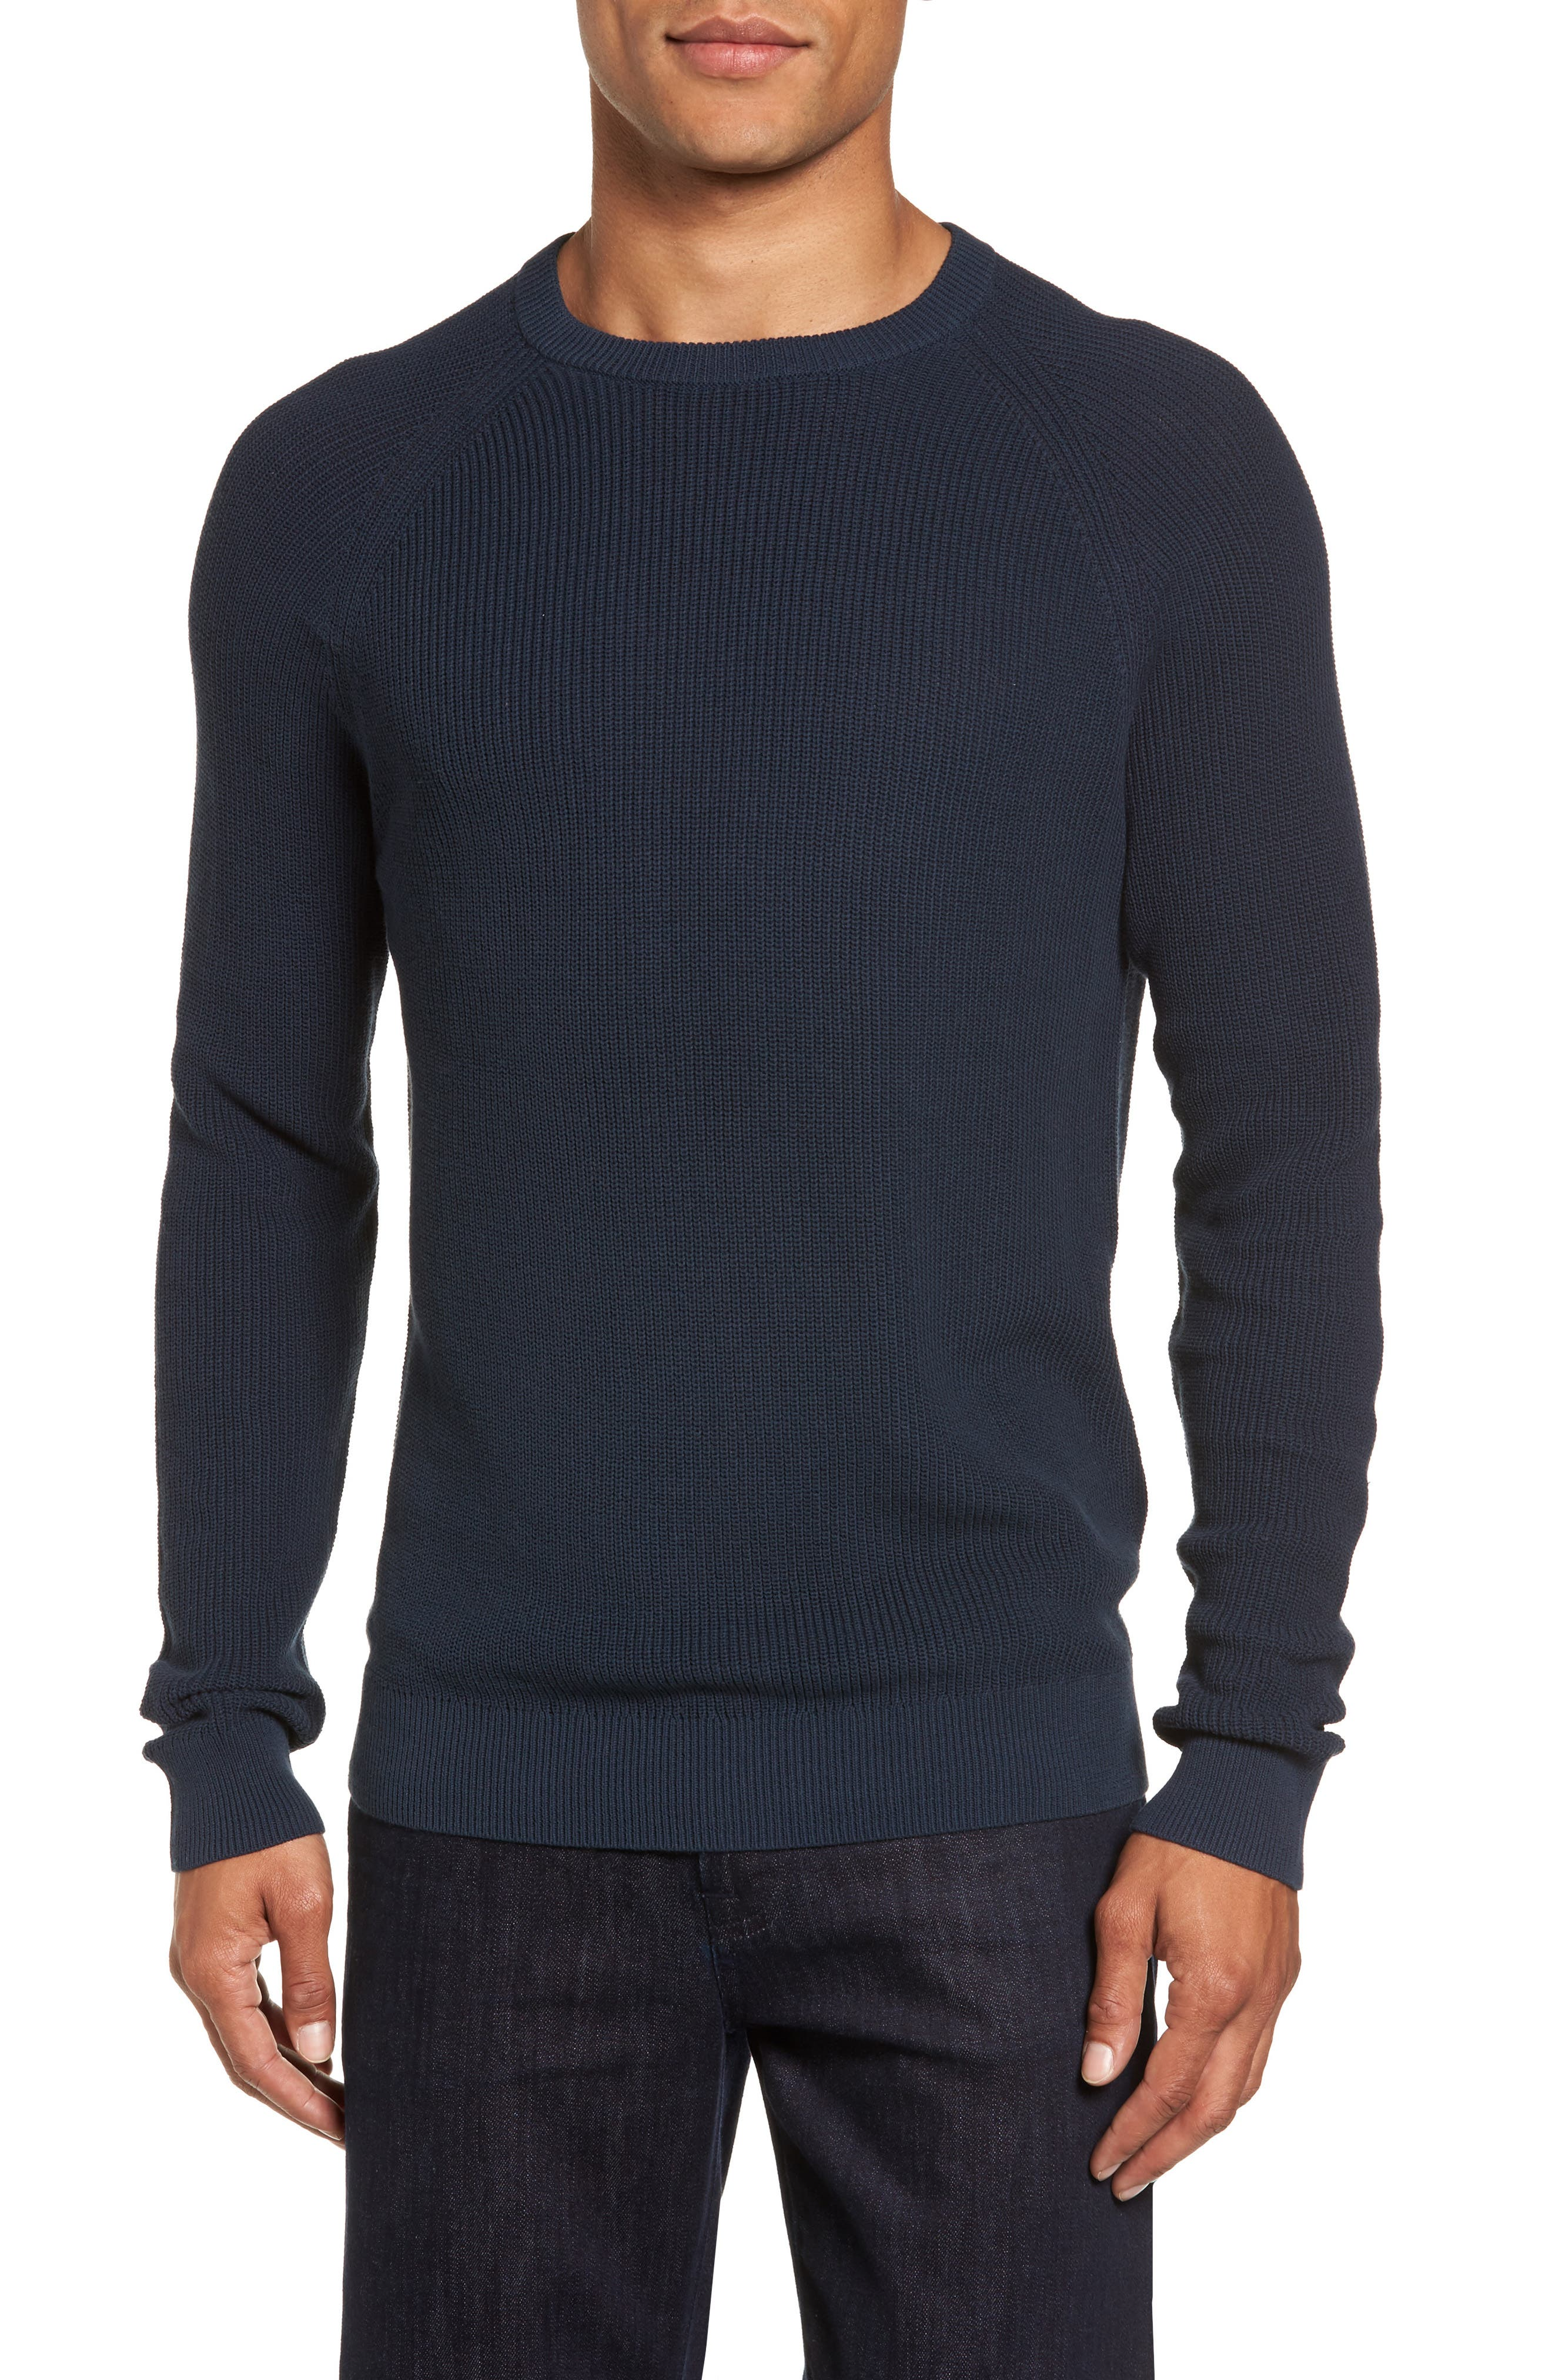 Free shipping on all men's sale at landlaw.ml Shop the best brands on sale at landlaw.ml Totally free shipping & returns.